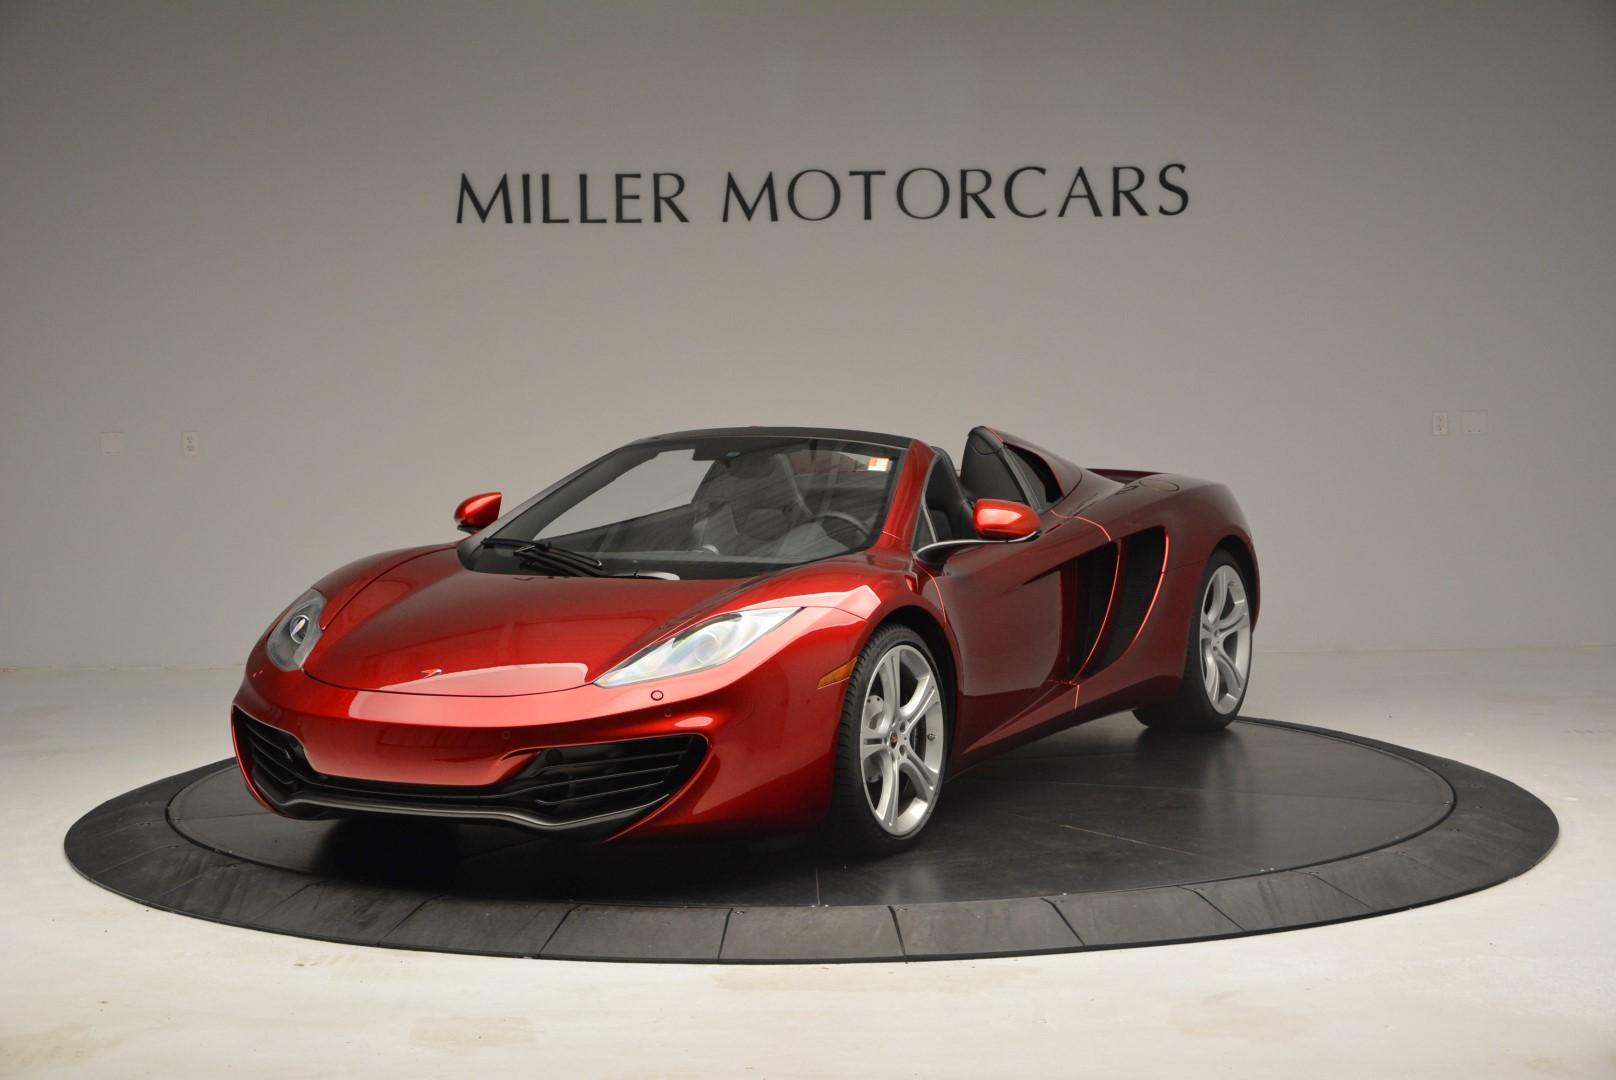 Used 2013 McLaren 12C Spider for sale Sold at Maserati of Westport in Westport CT 06880 1